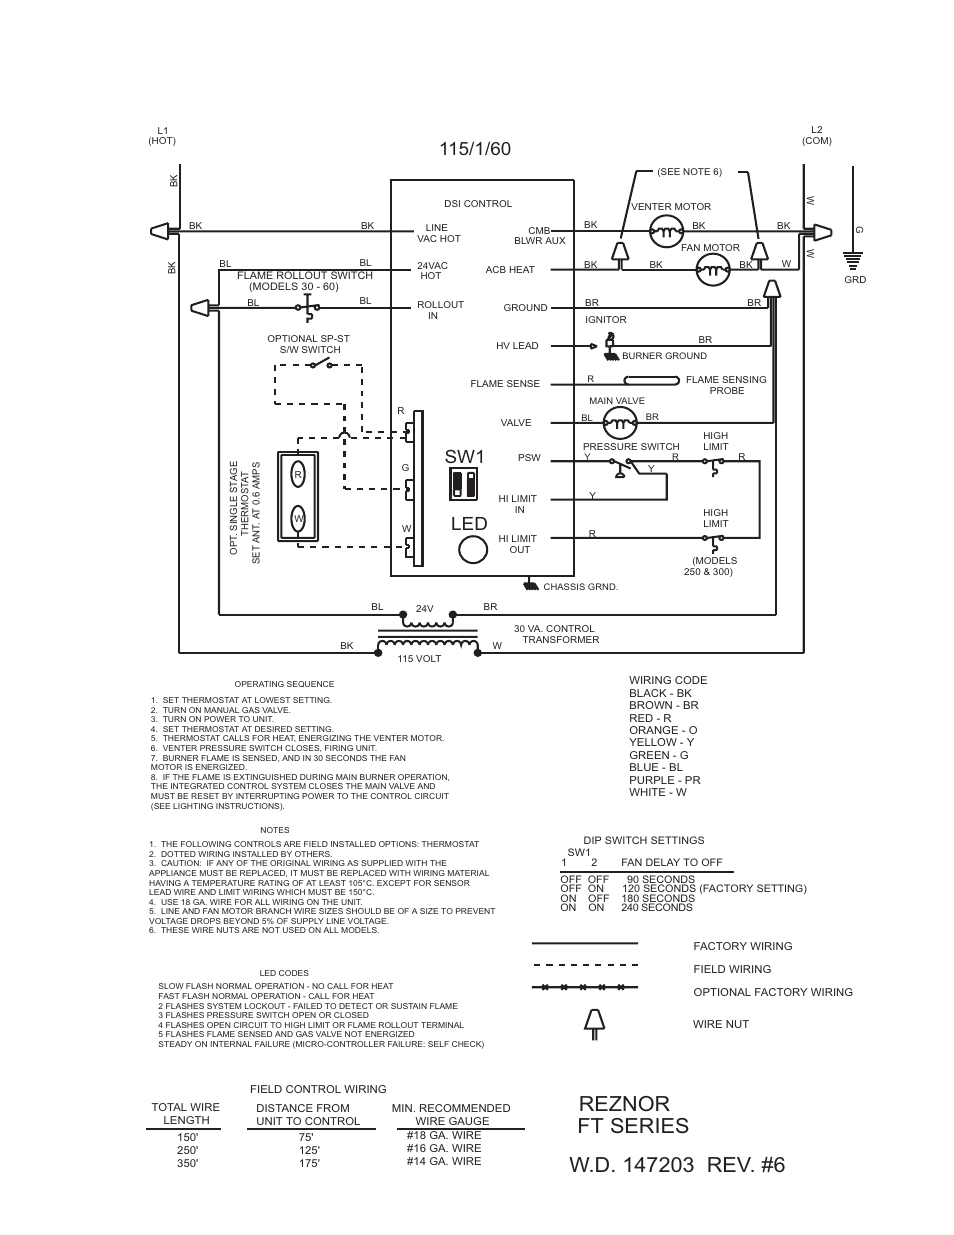 gas heater wiring diagram typical wiring diagram  ft series reznor reznor ft unit  typical wiring diagram  ft series